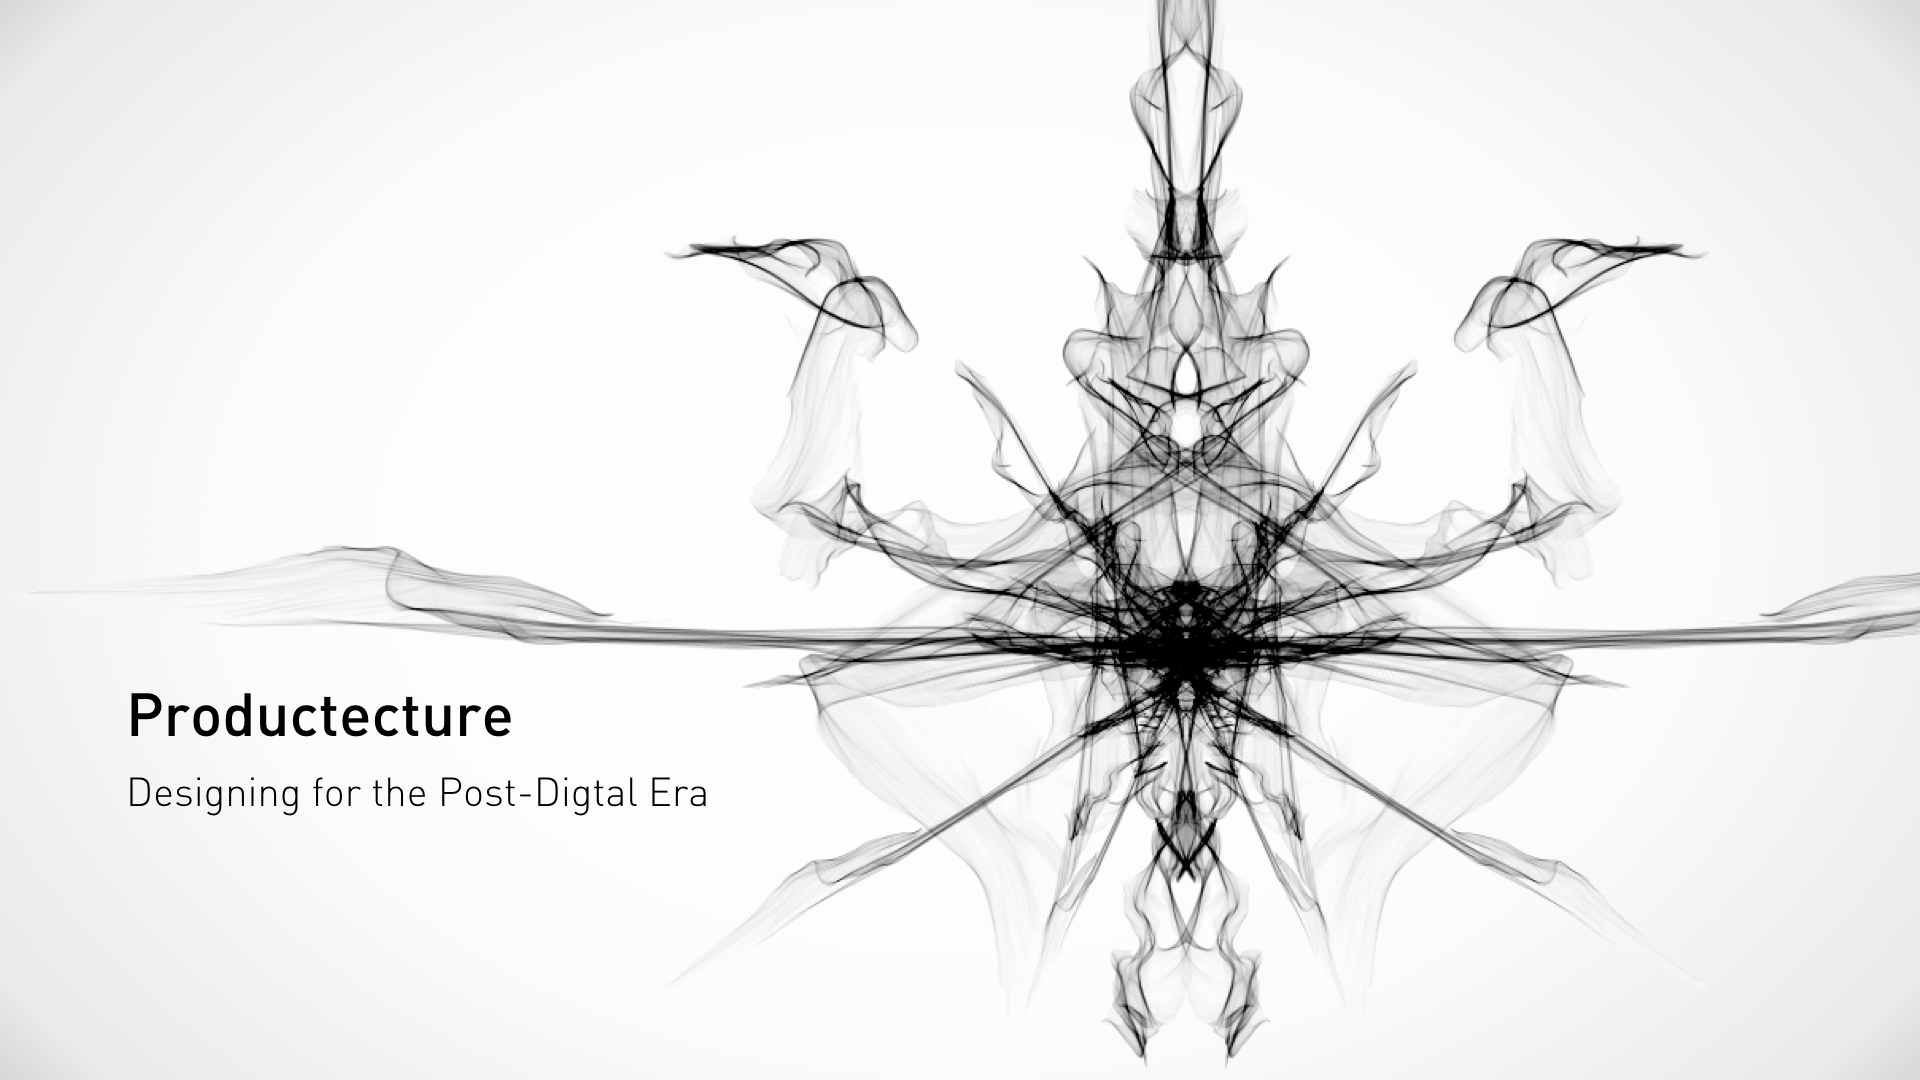 Productecture: Designing for the Post-Digital Era, by Sanjiv Sirpal